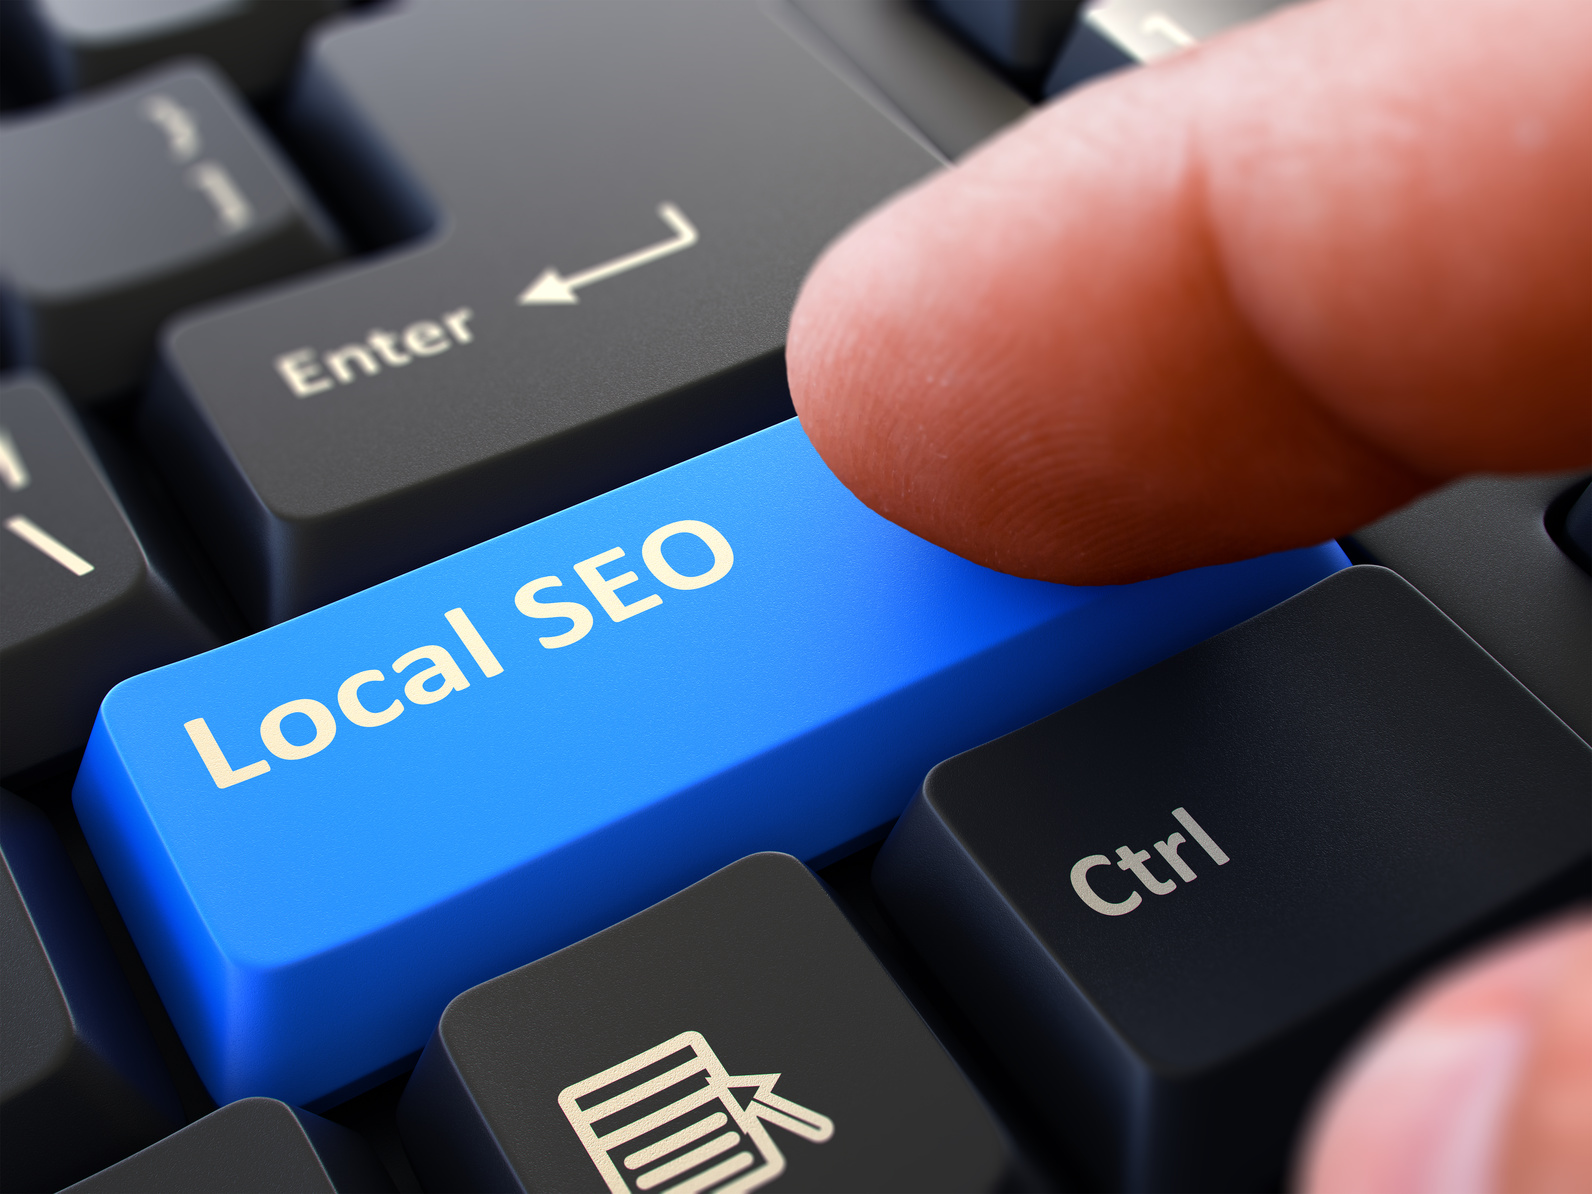 finger clicking Local seo on a keyboard representing Local Search Engine Optimization Valparaiso